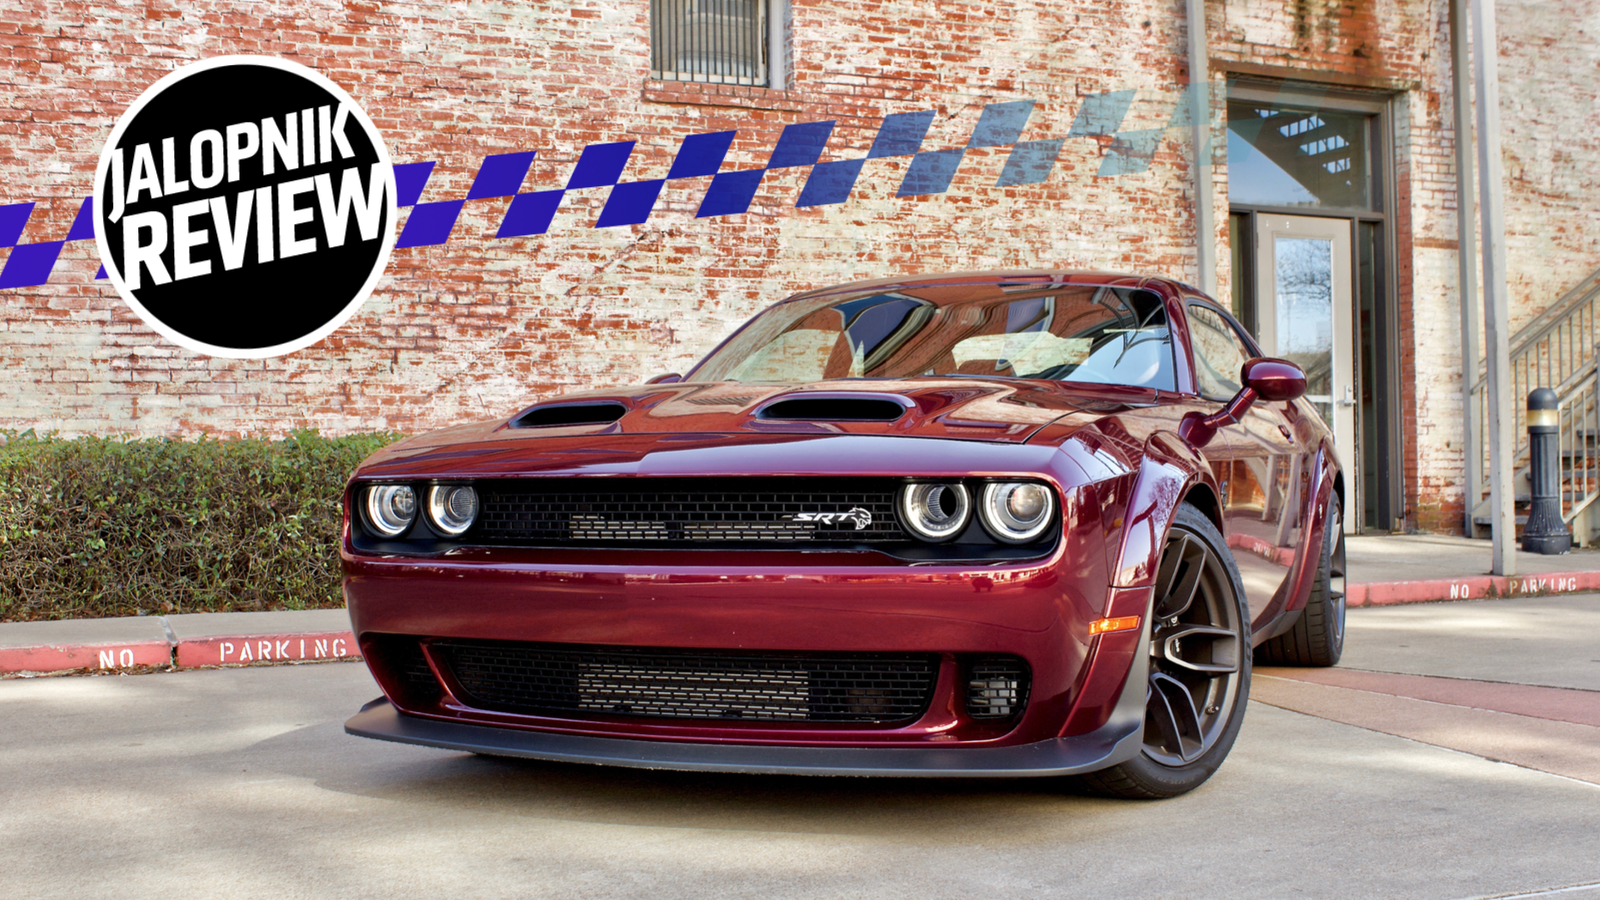 The 797-HP 2019 Dodge Challenger SRT Hellcat Redeye Proves